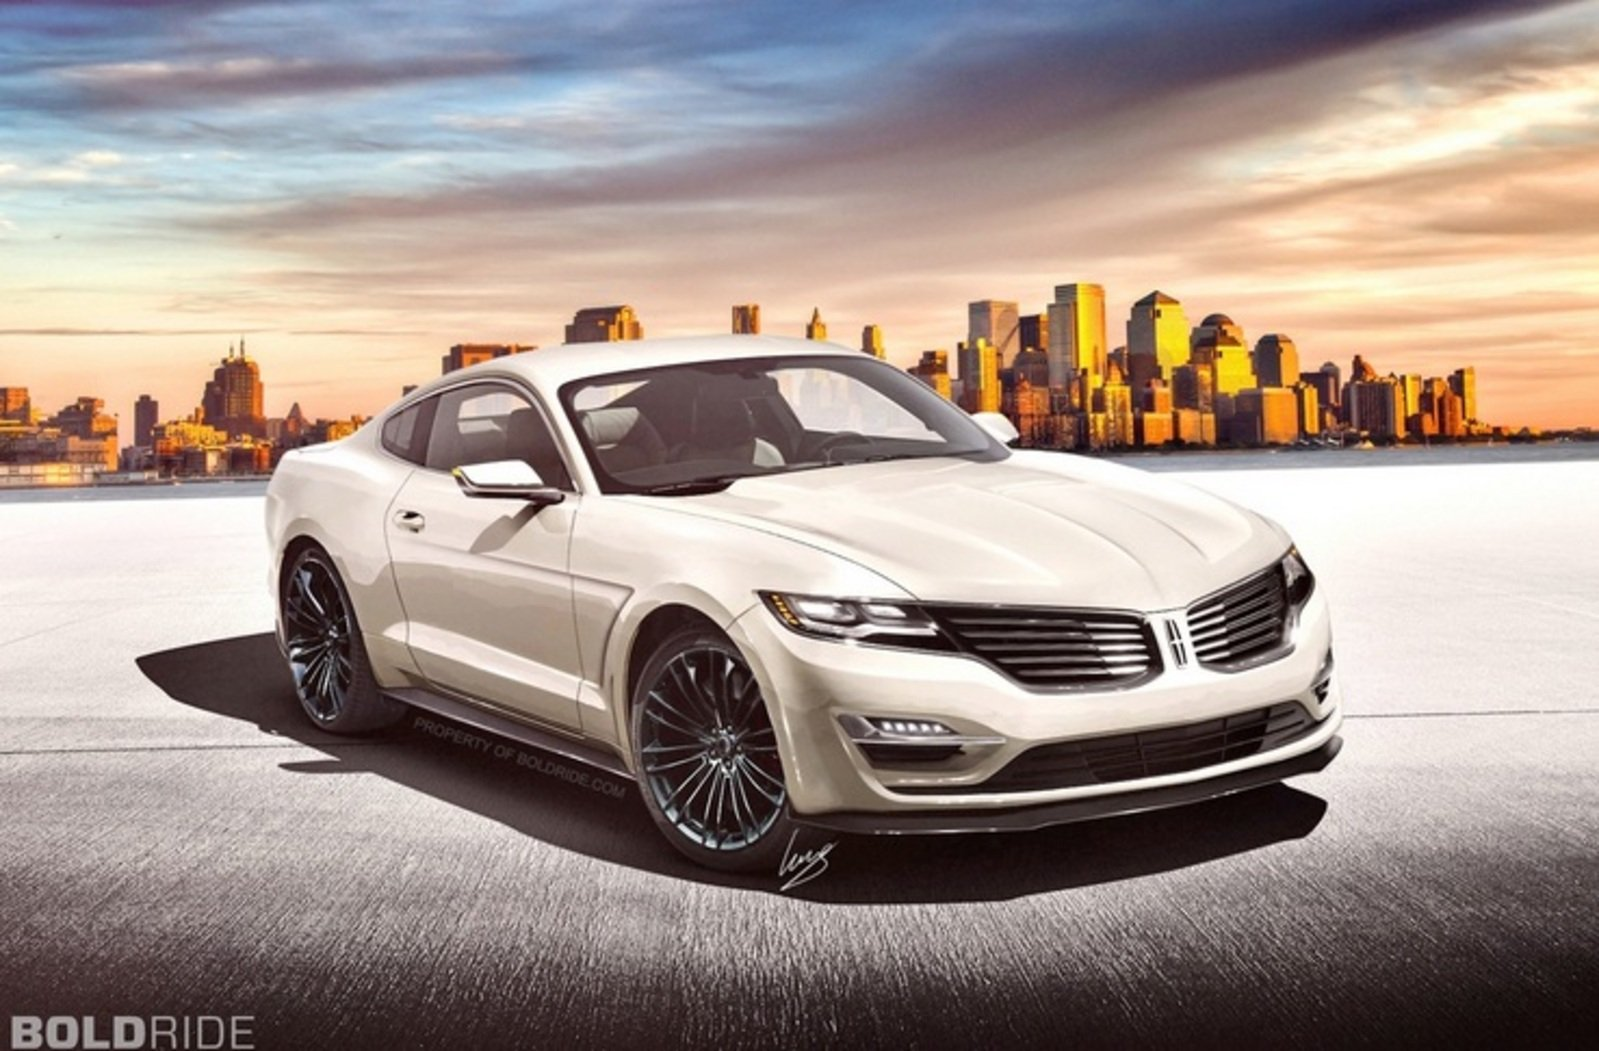 2016 Lincoln MK Coupe Concept Review - Top Speed